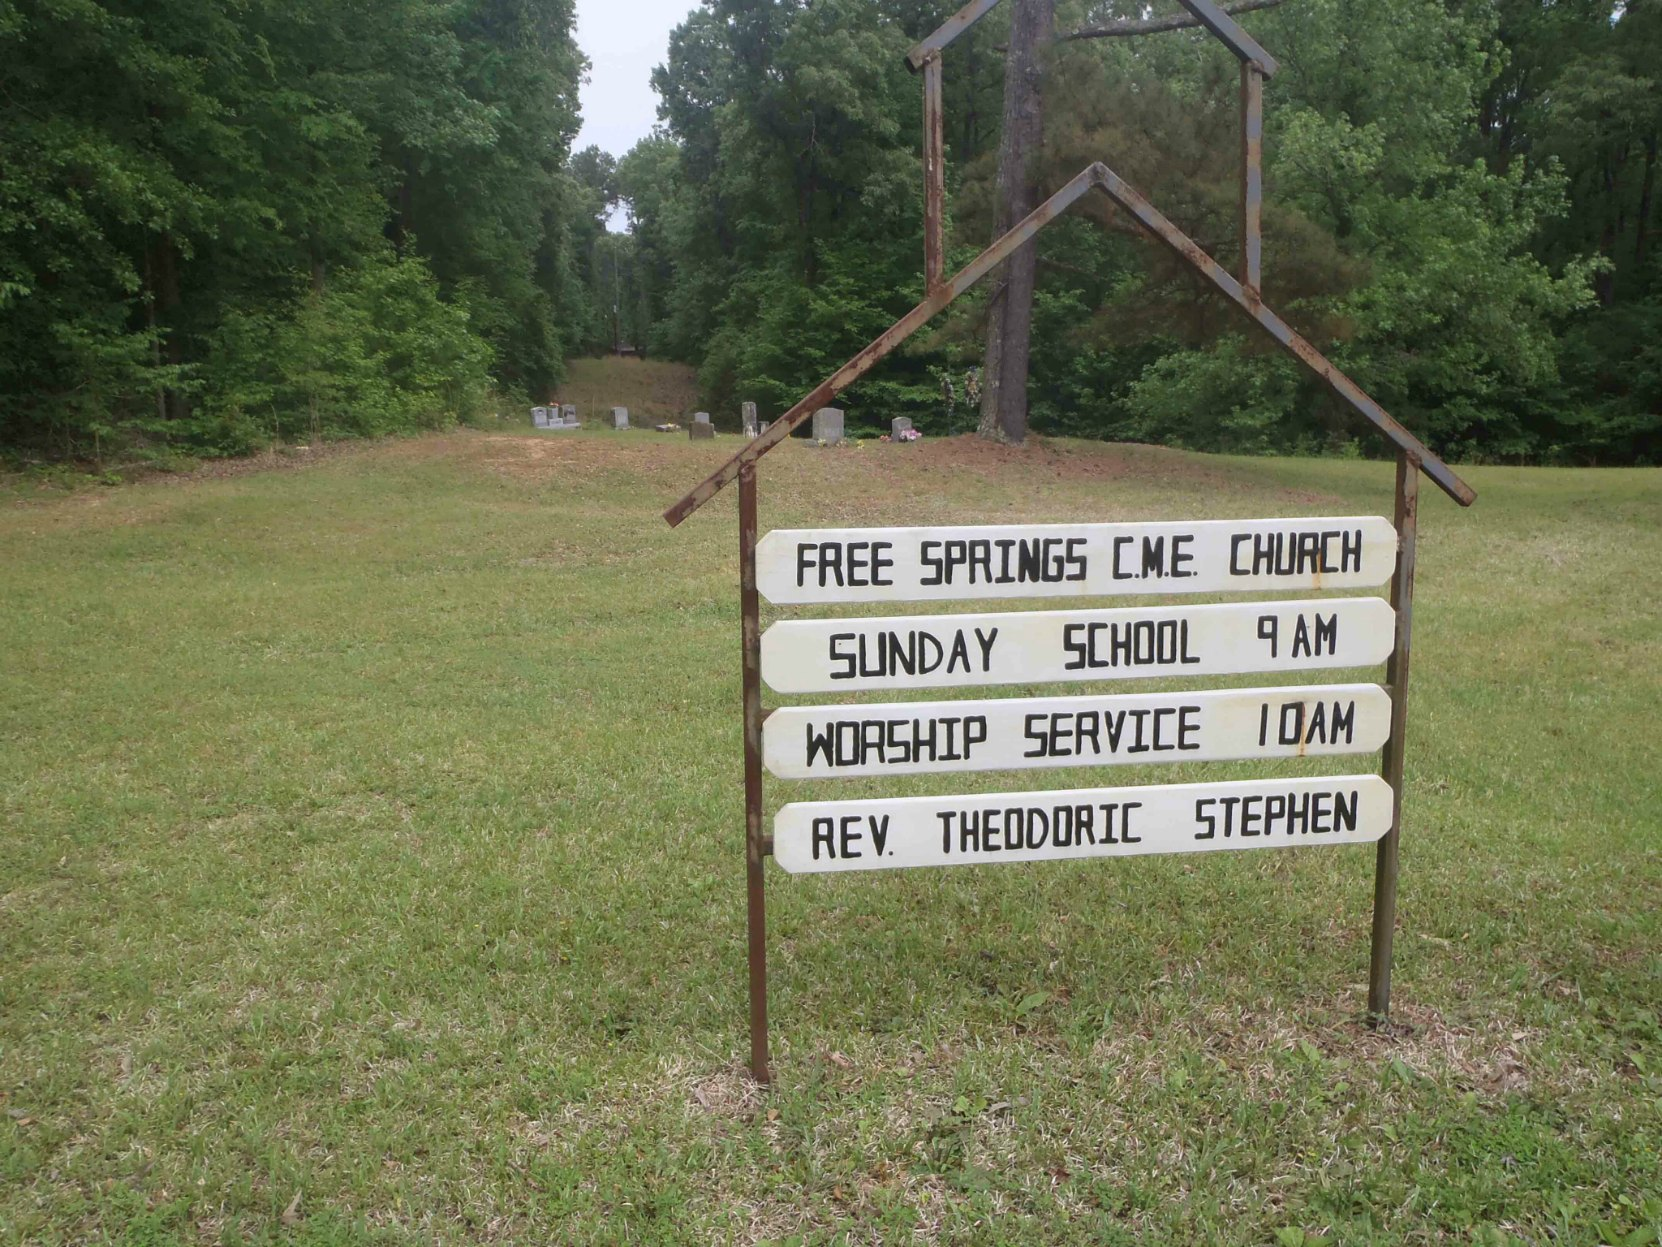 Free Springs C.M.E. Church sign as it appears from the road. R.L. Burnside's grave is in the cemetery visible behind the sign.